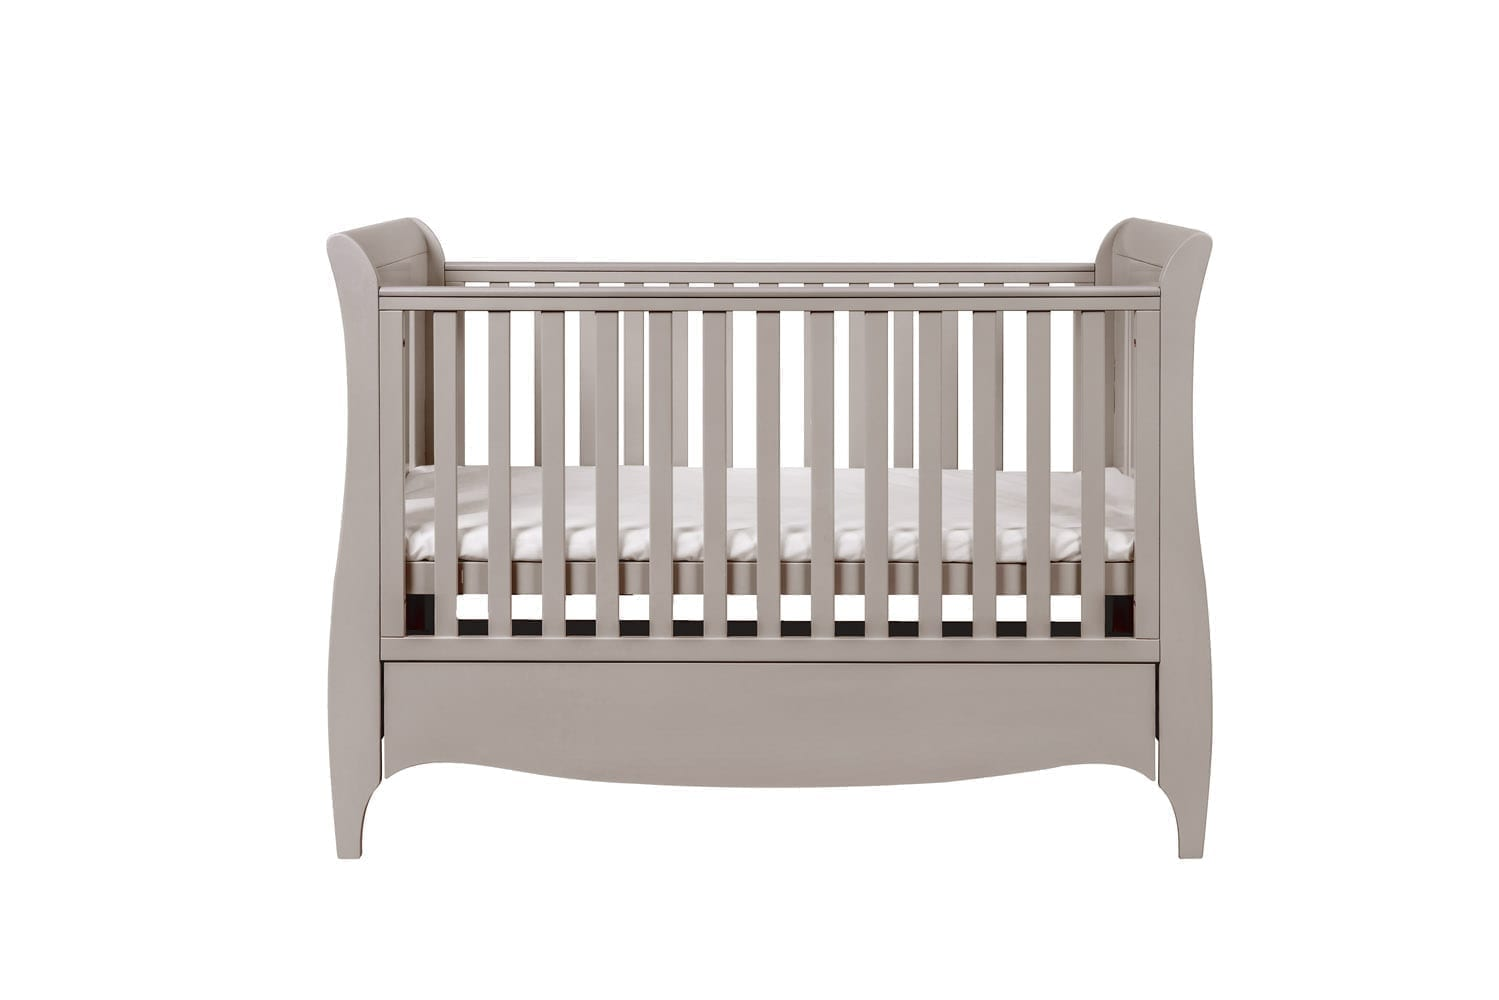 Tutti Bambini Roma Sleigh Cot Bed with Under Bed Drawer - Truffle Grey